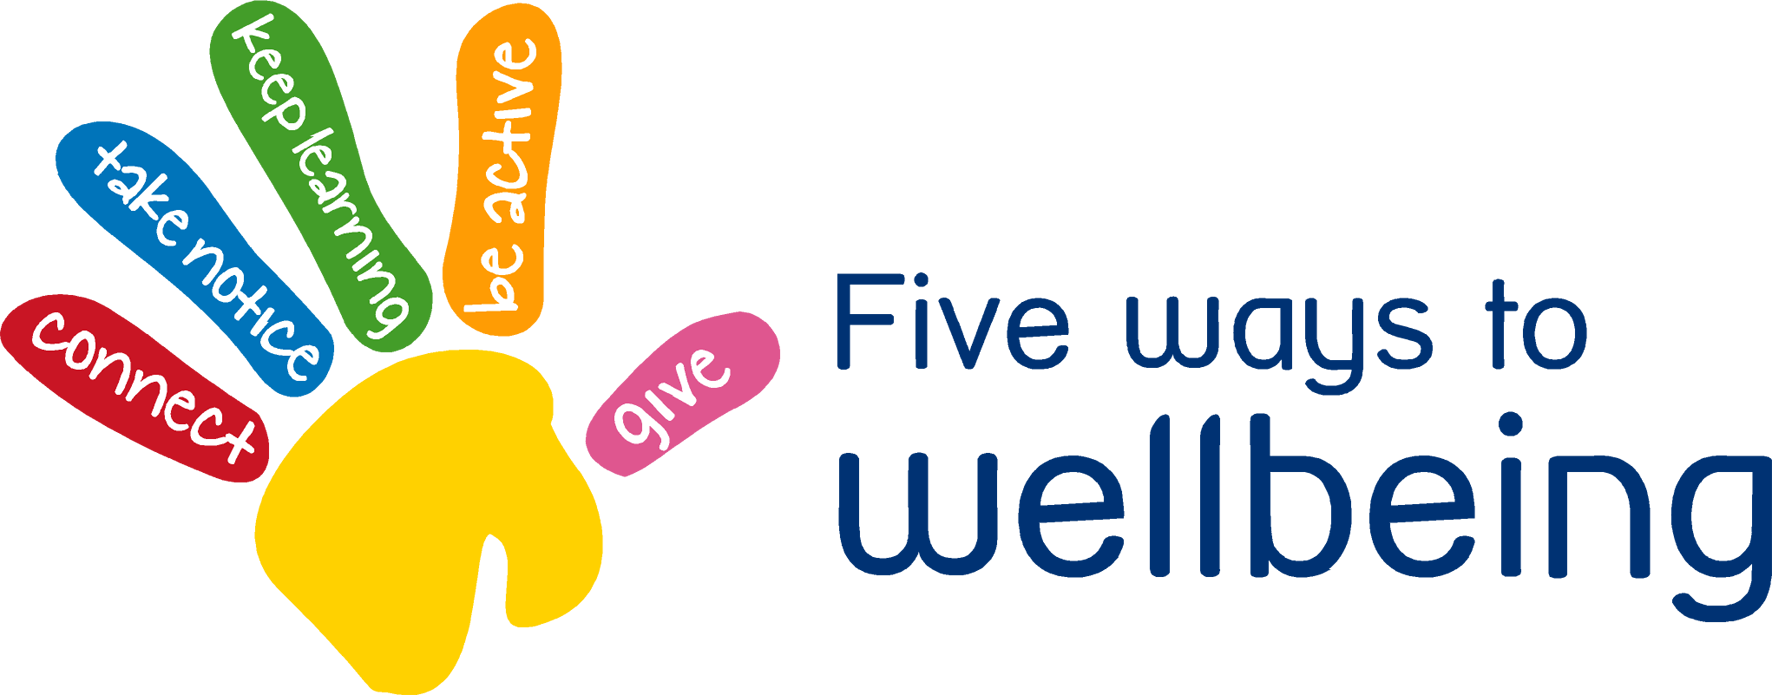 Visit Our New Health Amp Well Being Pages Avon Dassett